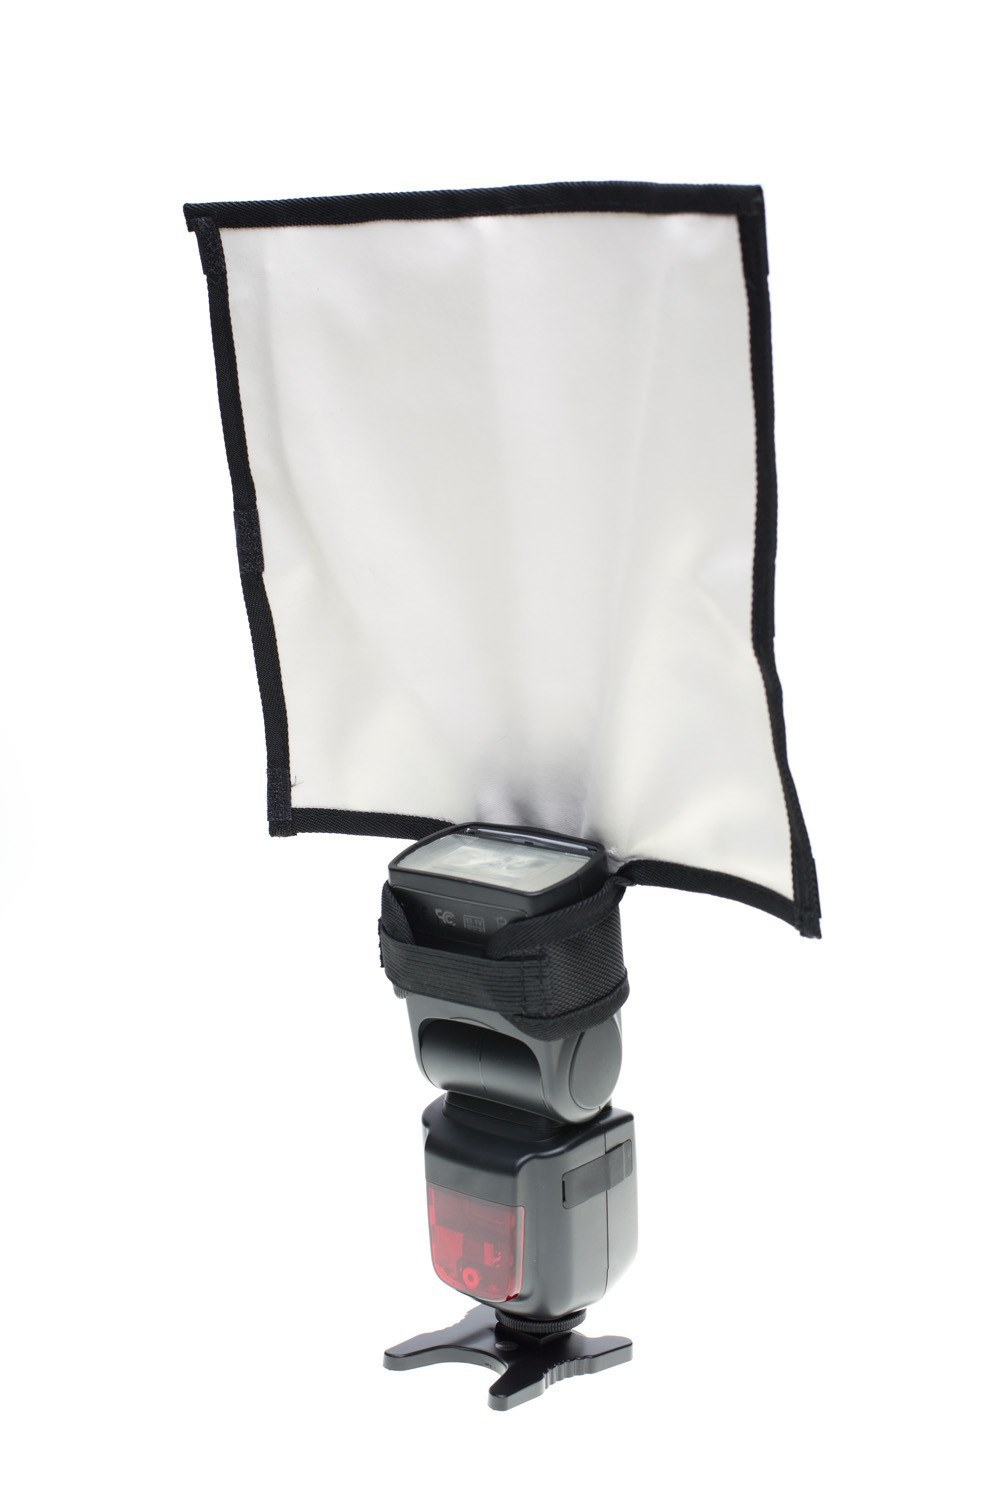 StudioPRO Bending Flash Bounce Positionable Reflector - Large -  - 1